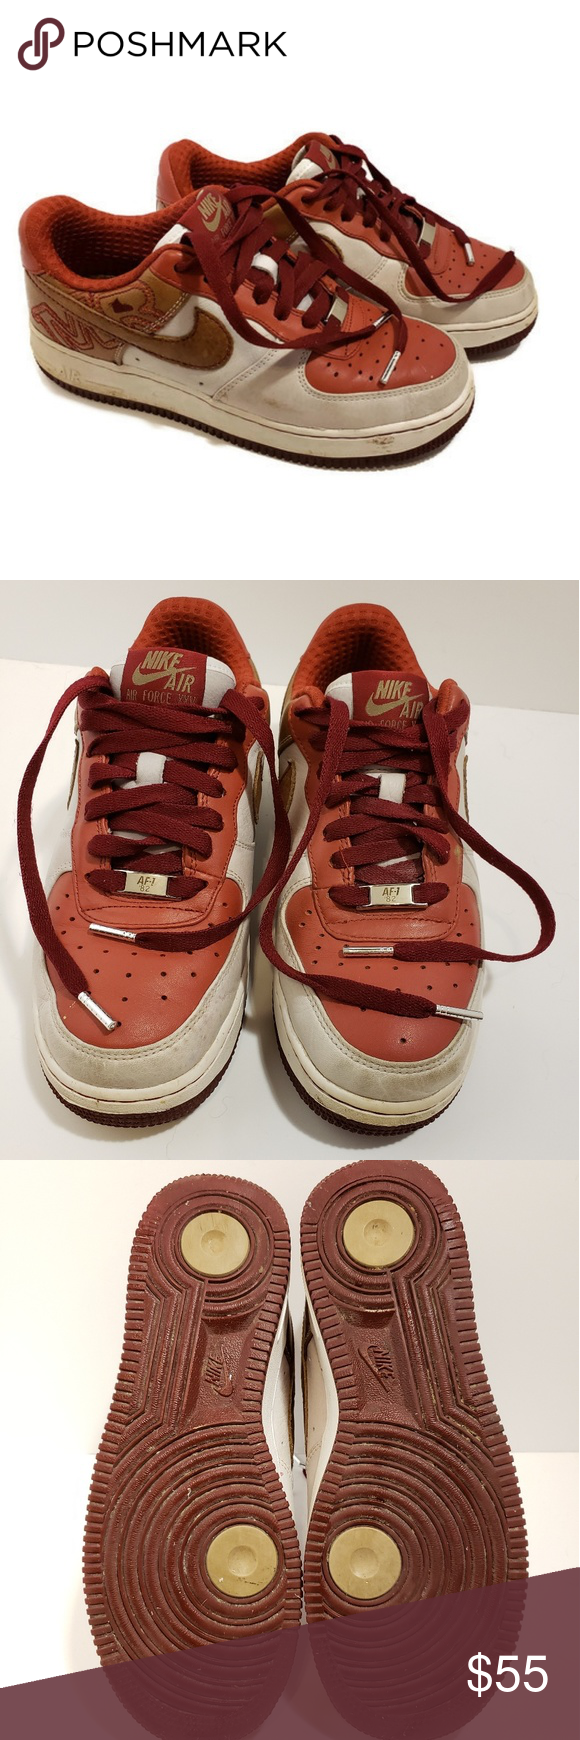 promo code e4253 81316 Nike Air Force 1 white pink tan youth 6.5 Nike Air Force 1 Premium '07 (NS)  Pre-owned gently used see pictures for condition. Style Number: 315517-122  ...